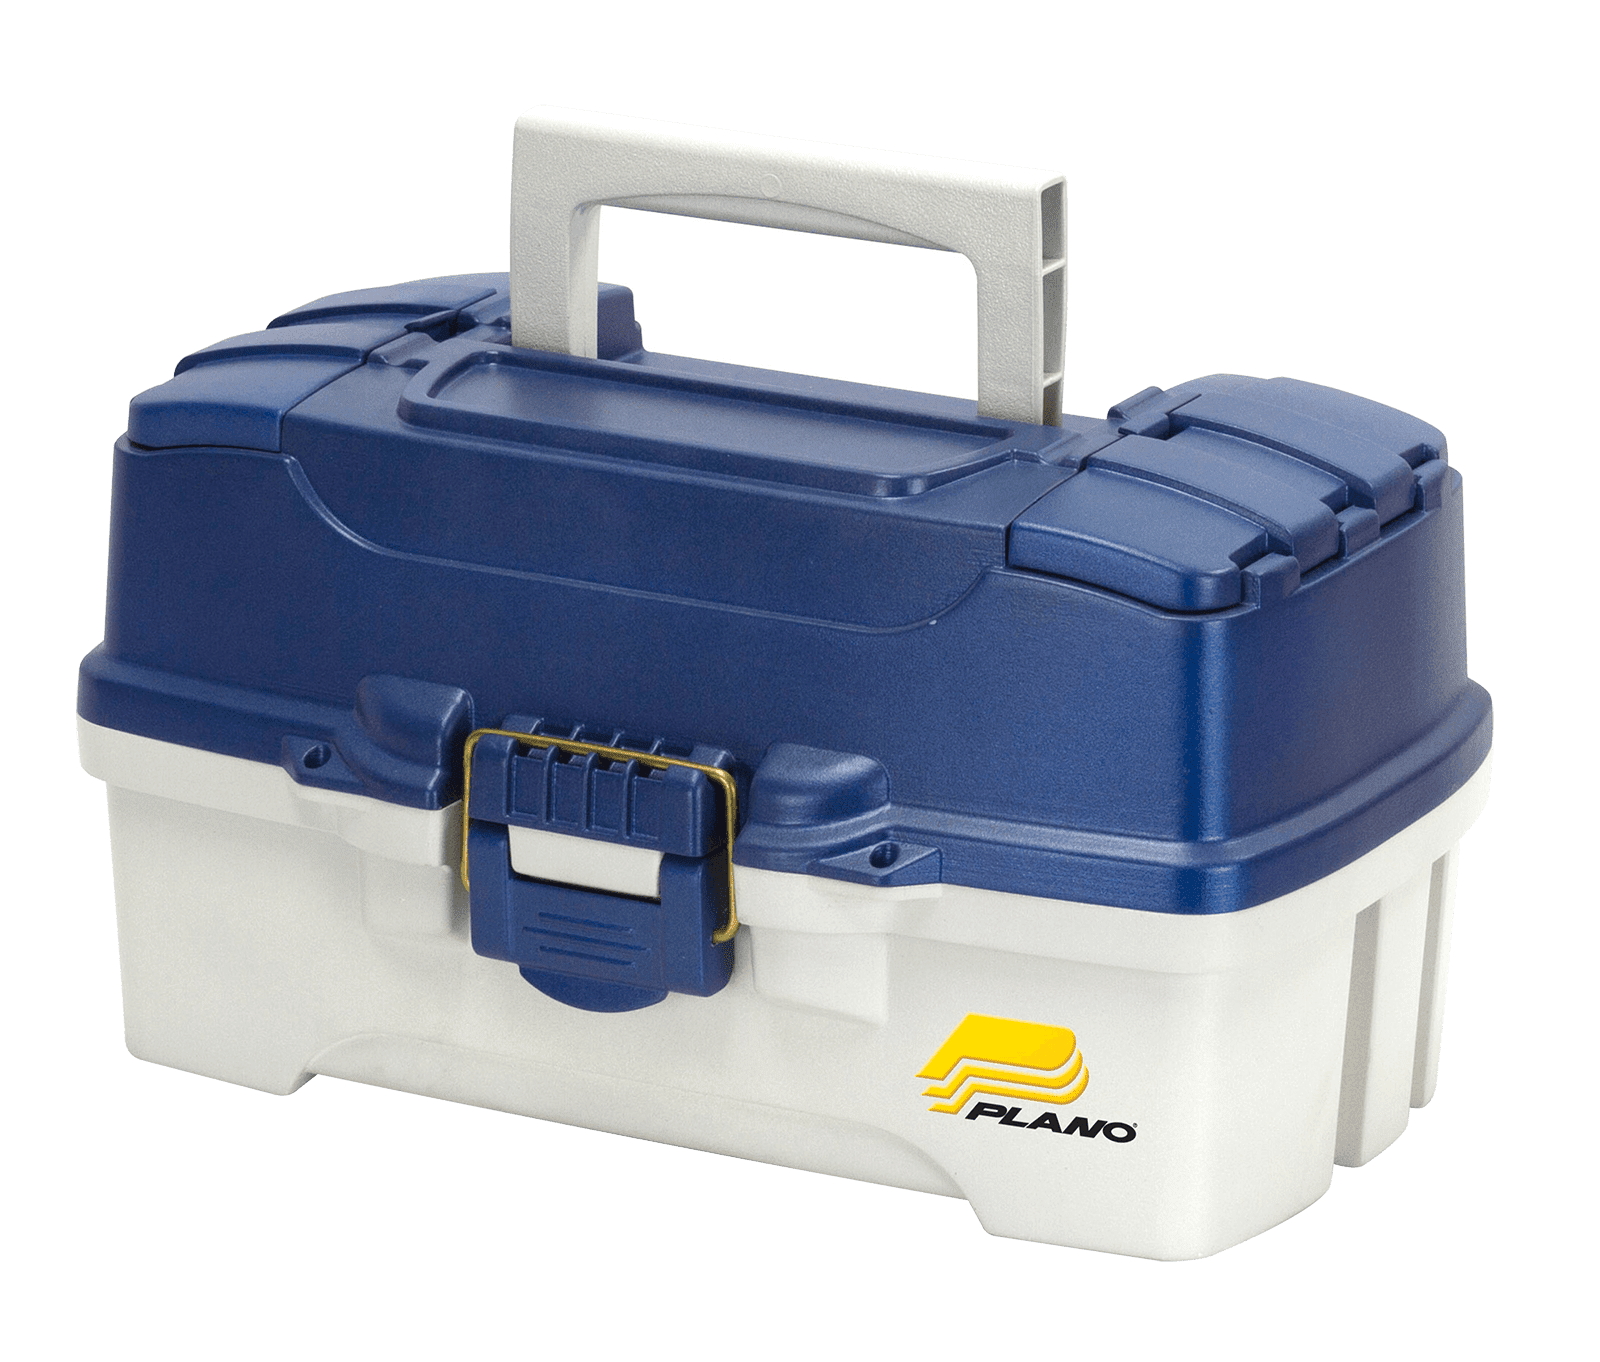 Plano Fishing, Two Tray Tackle Box, Dual Top Access, Blue Metallic Off White by Plano